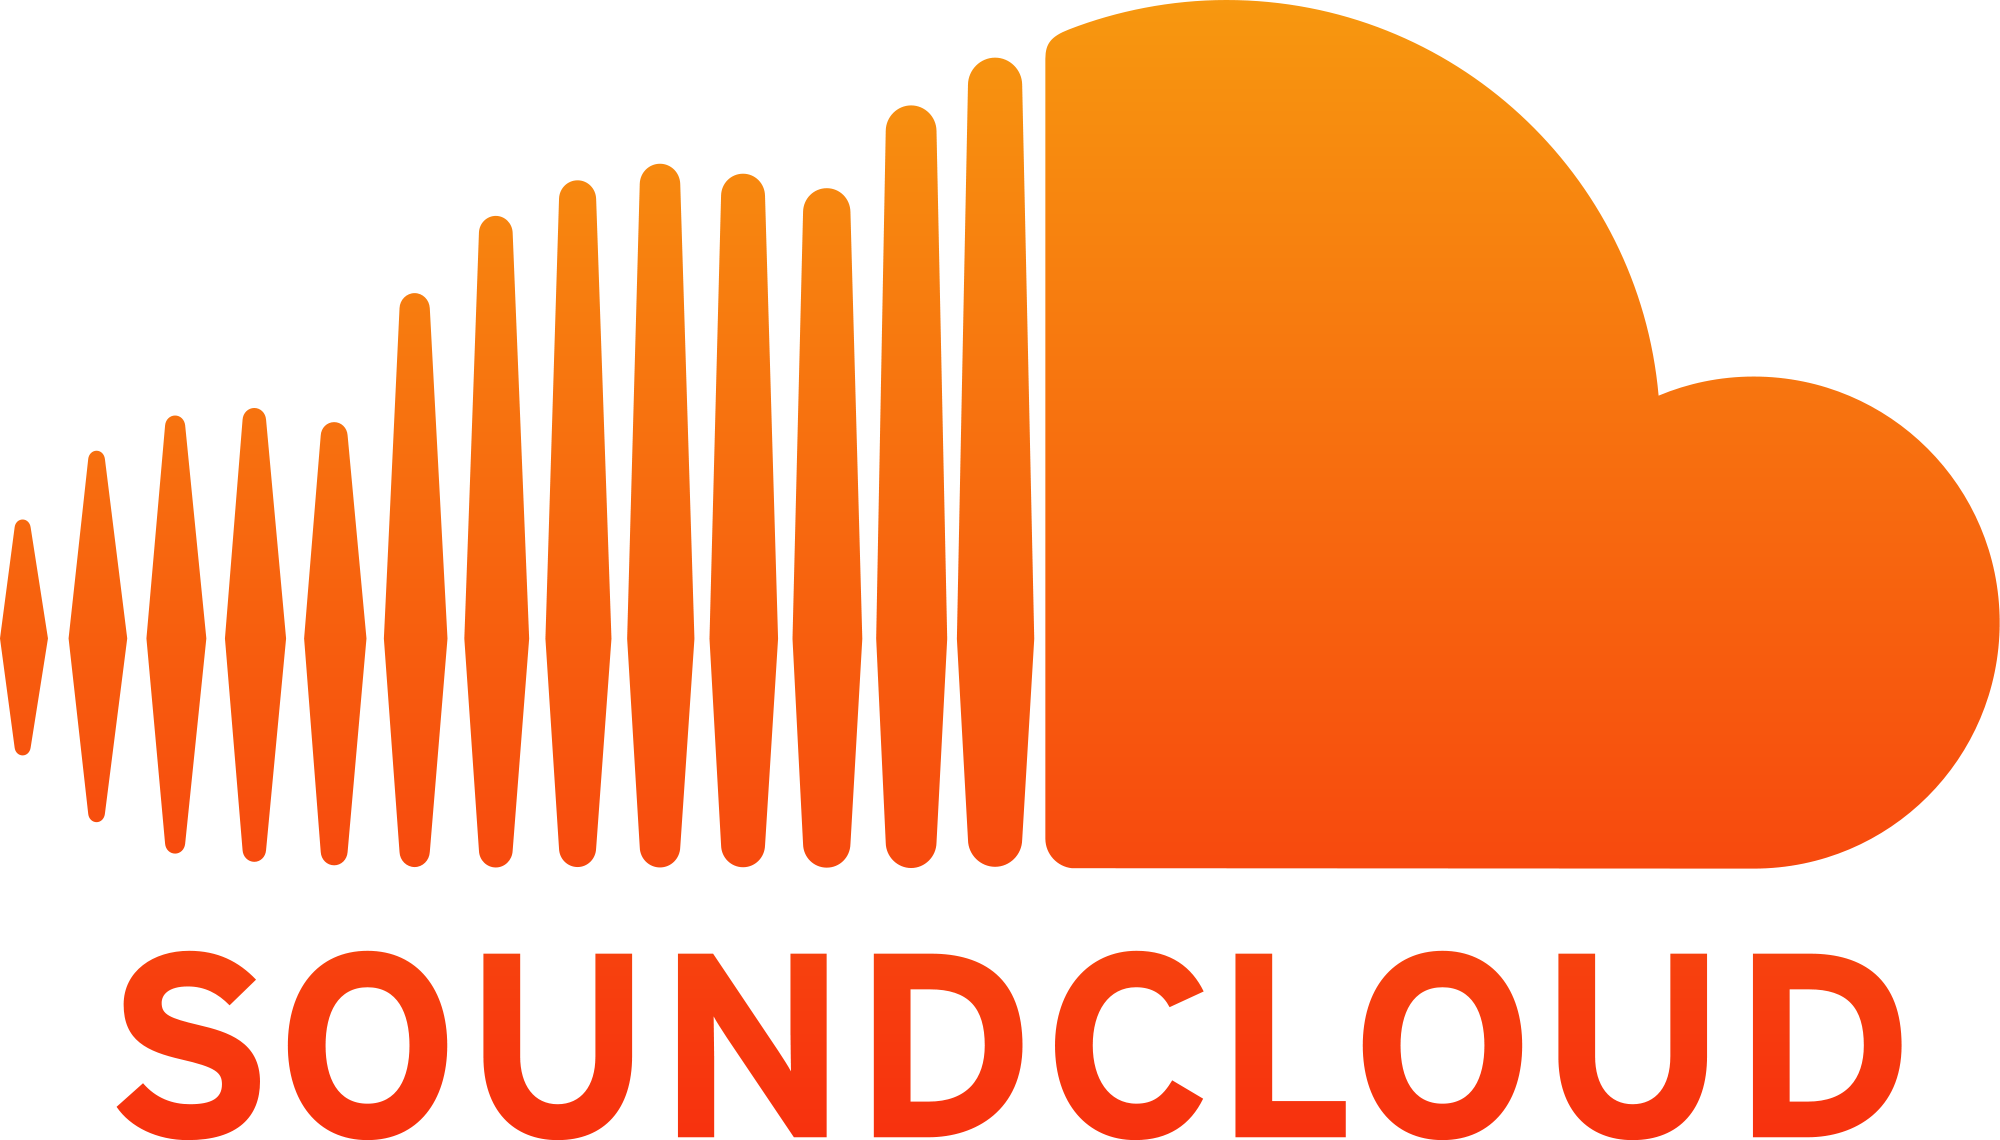 Follow AK on SoundCloud